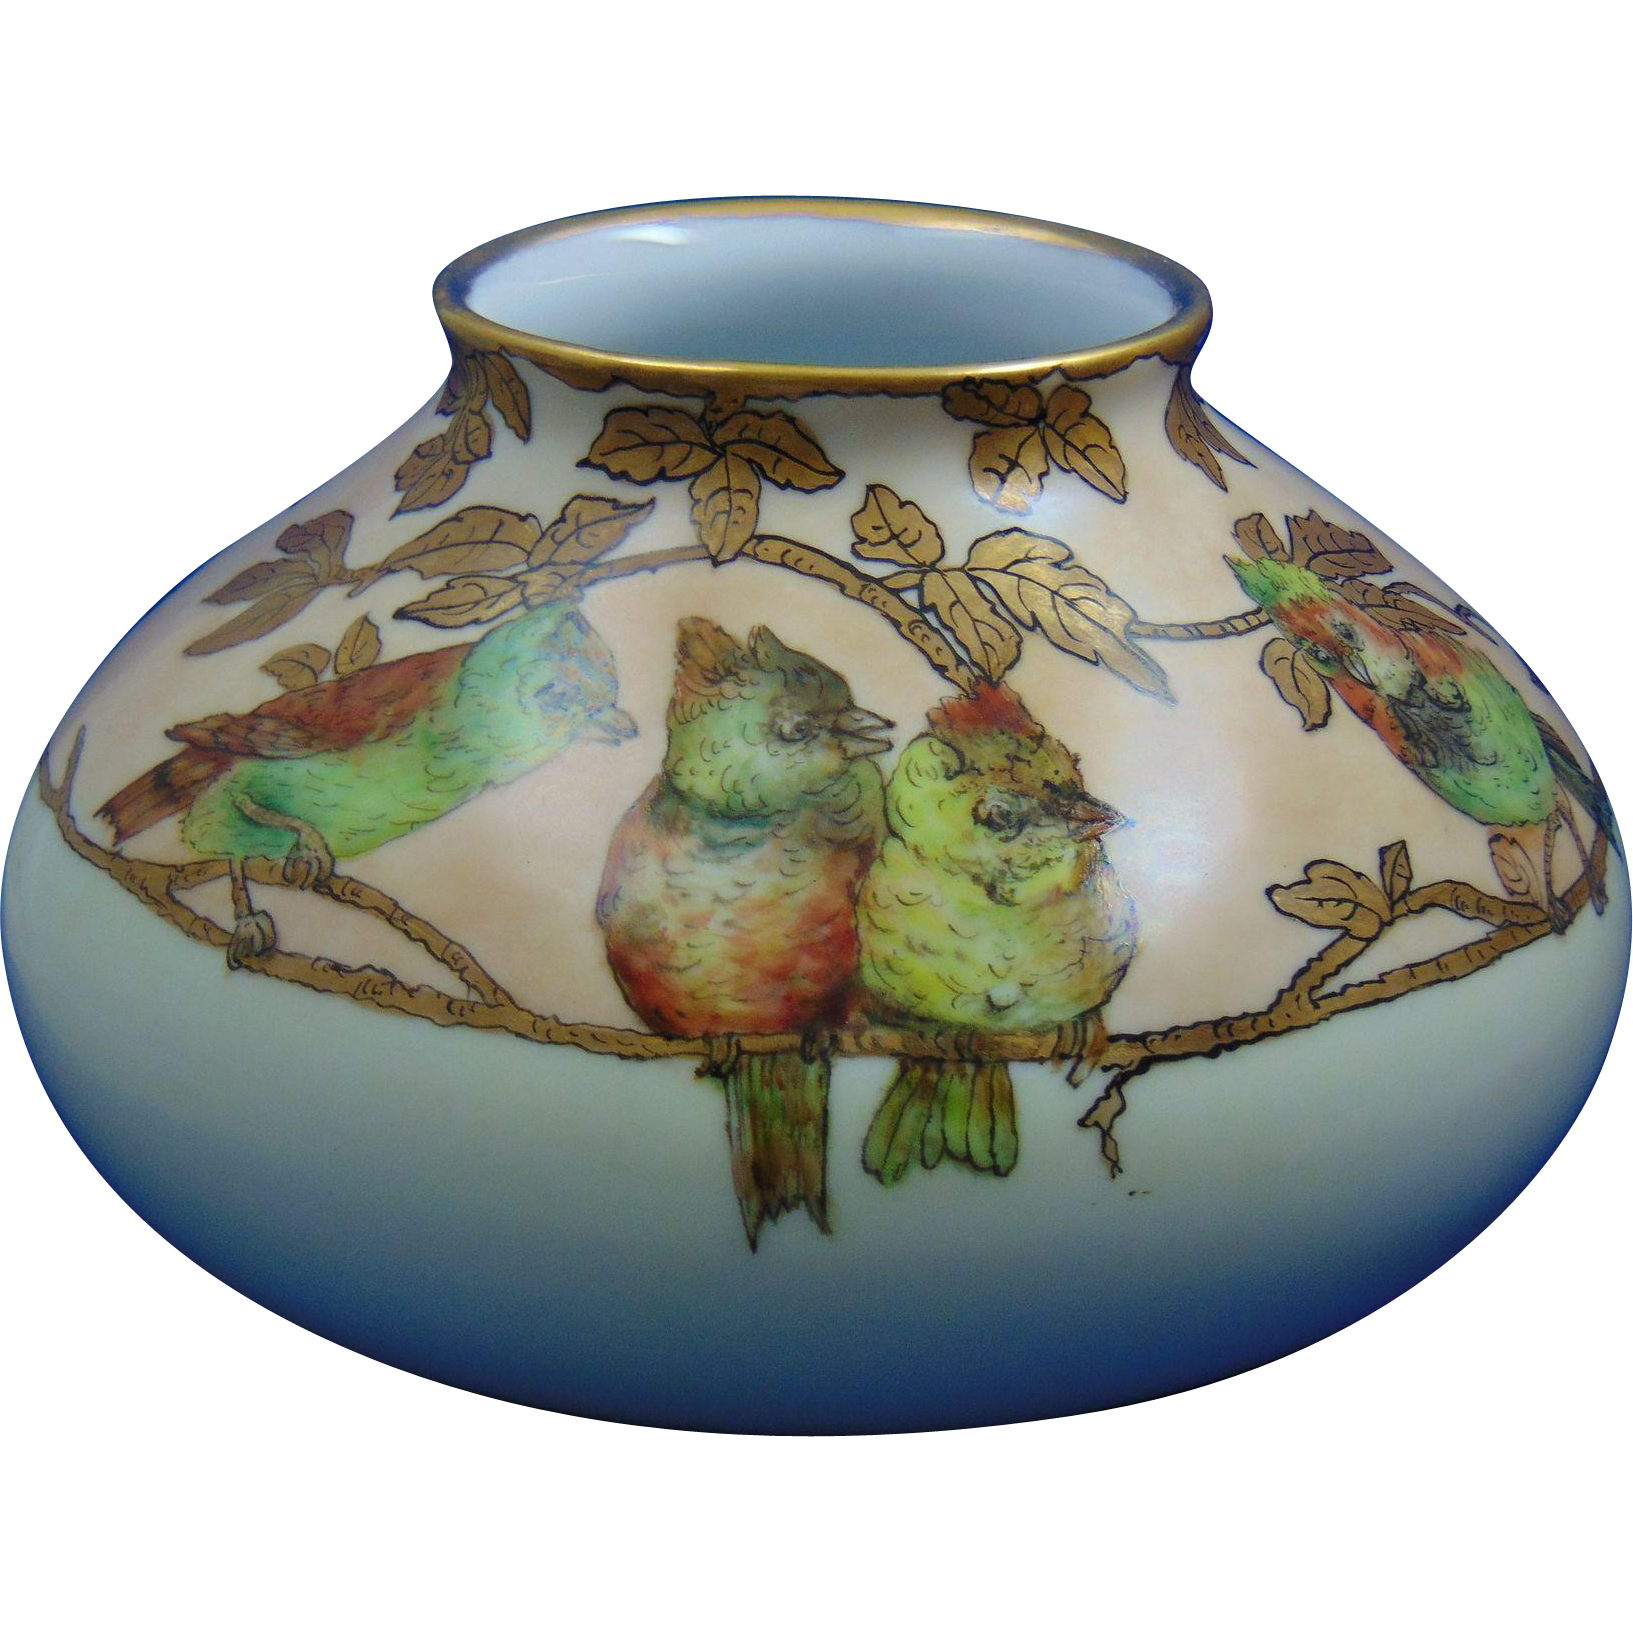 Pfeiffer & Lowenstein (P&L) Austria Arts & Crafts Bird Motif Vase (c.1914-1918)